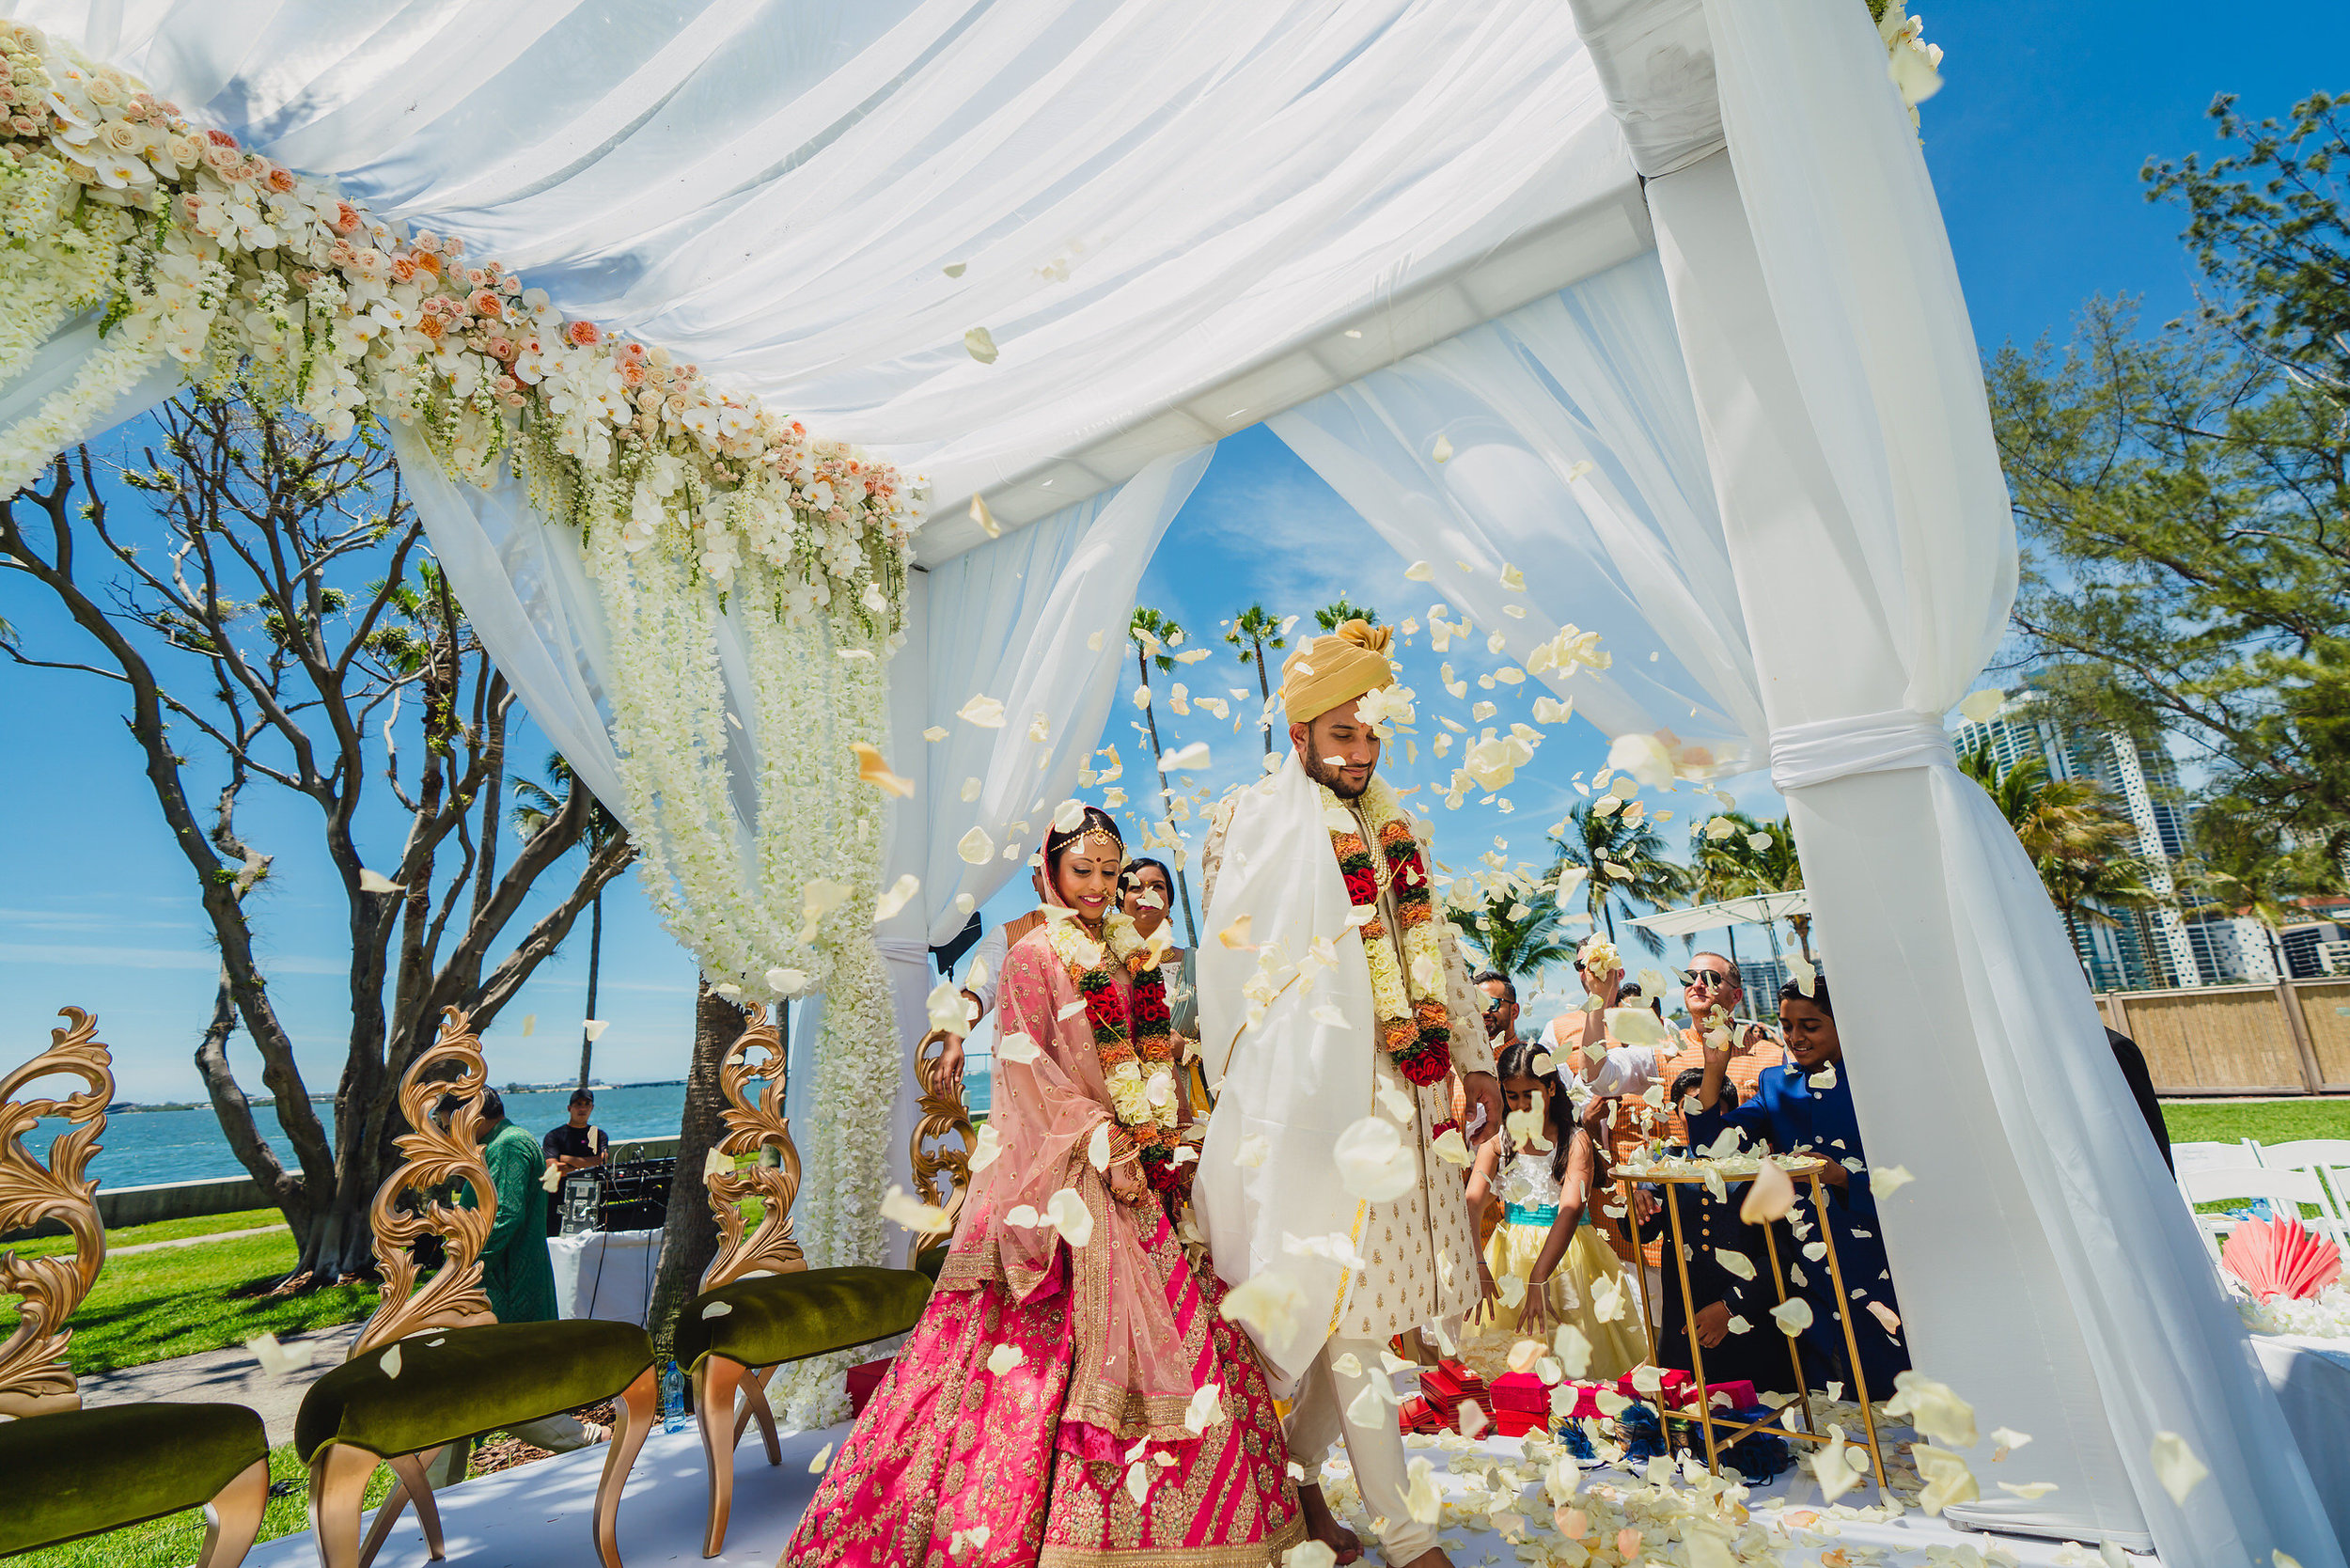 INDIAN WEDDING BRIDE AND GROOM WITH FLOWERS.JPG